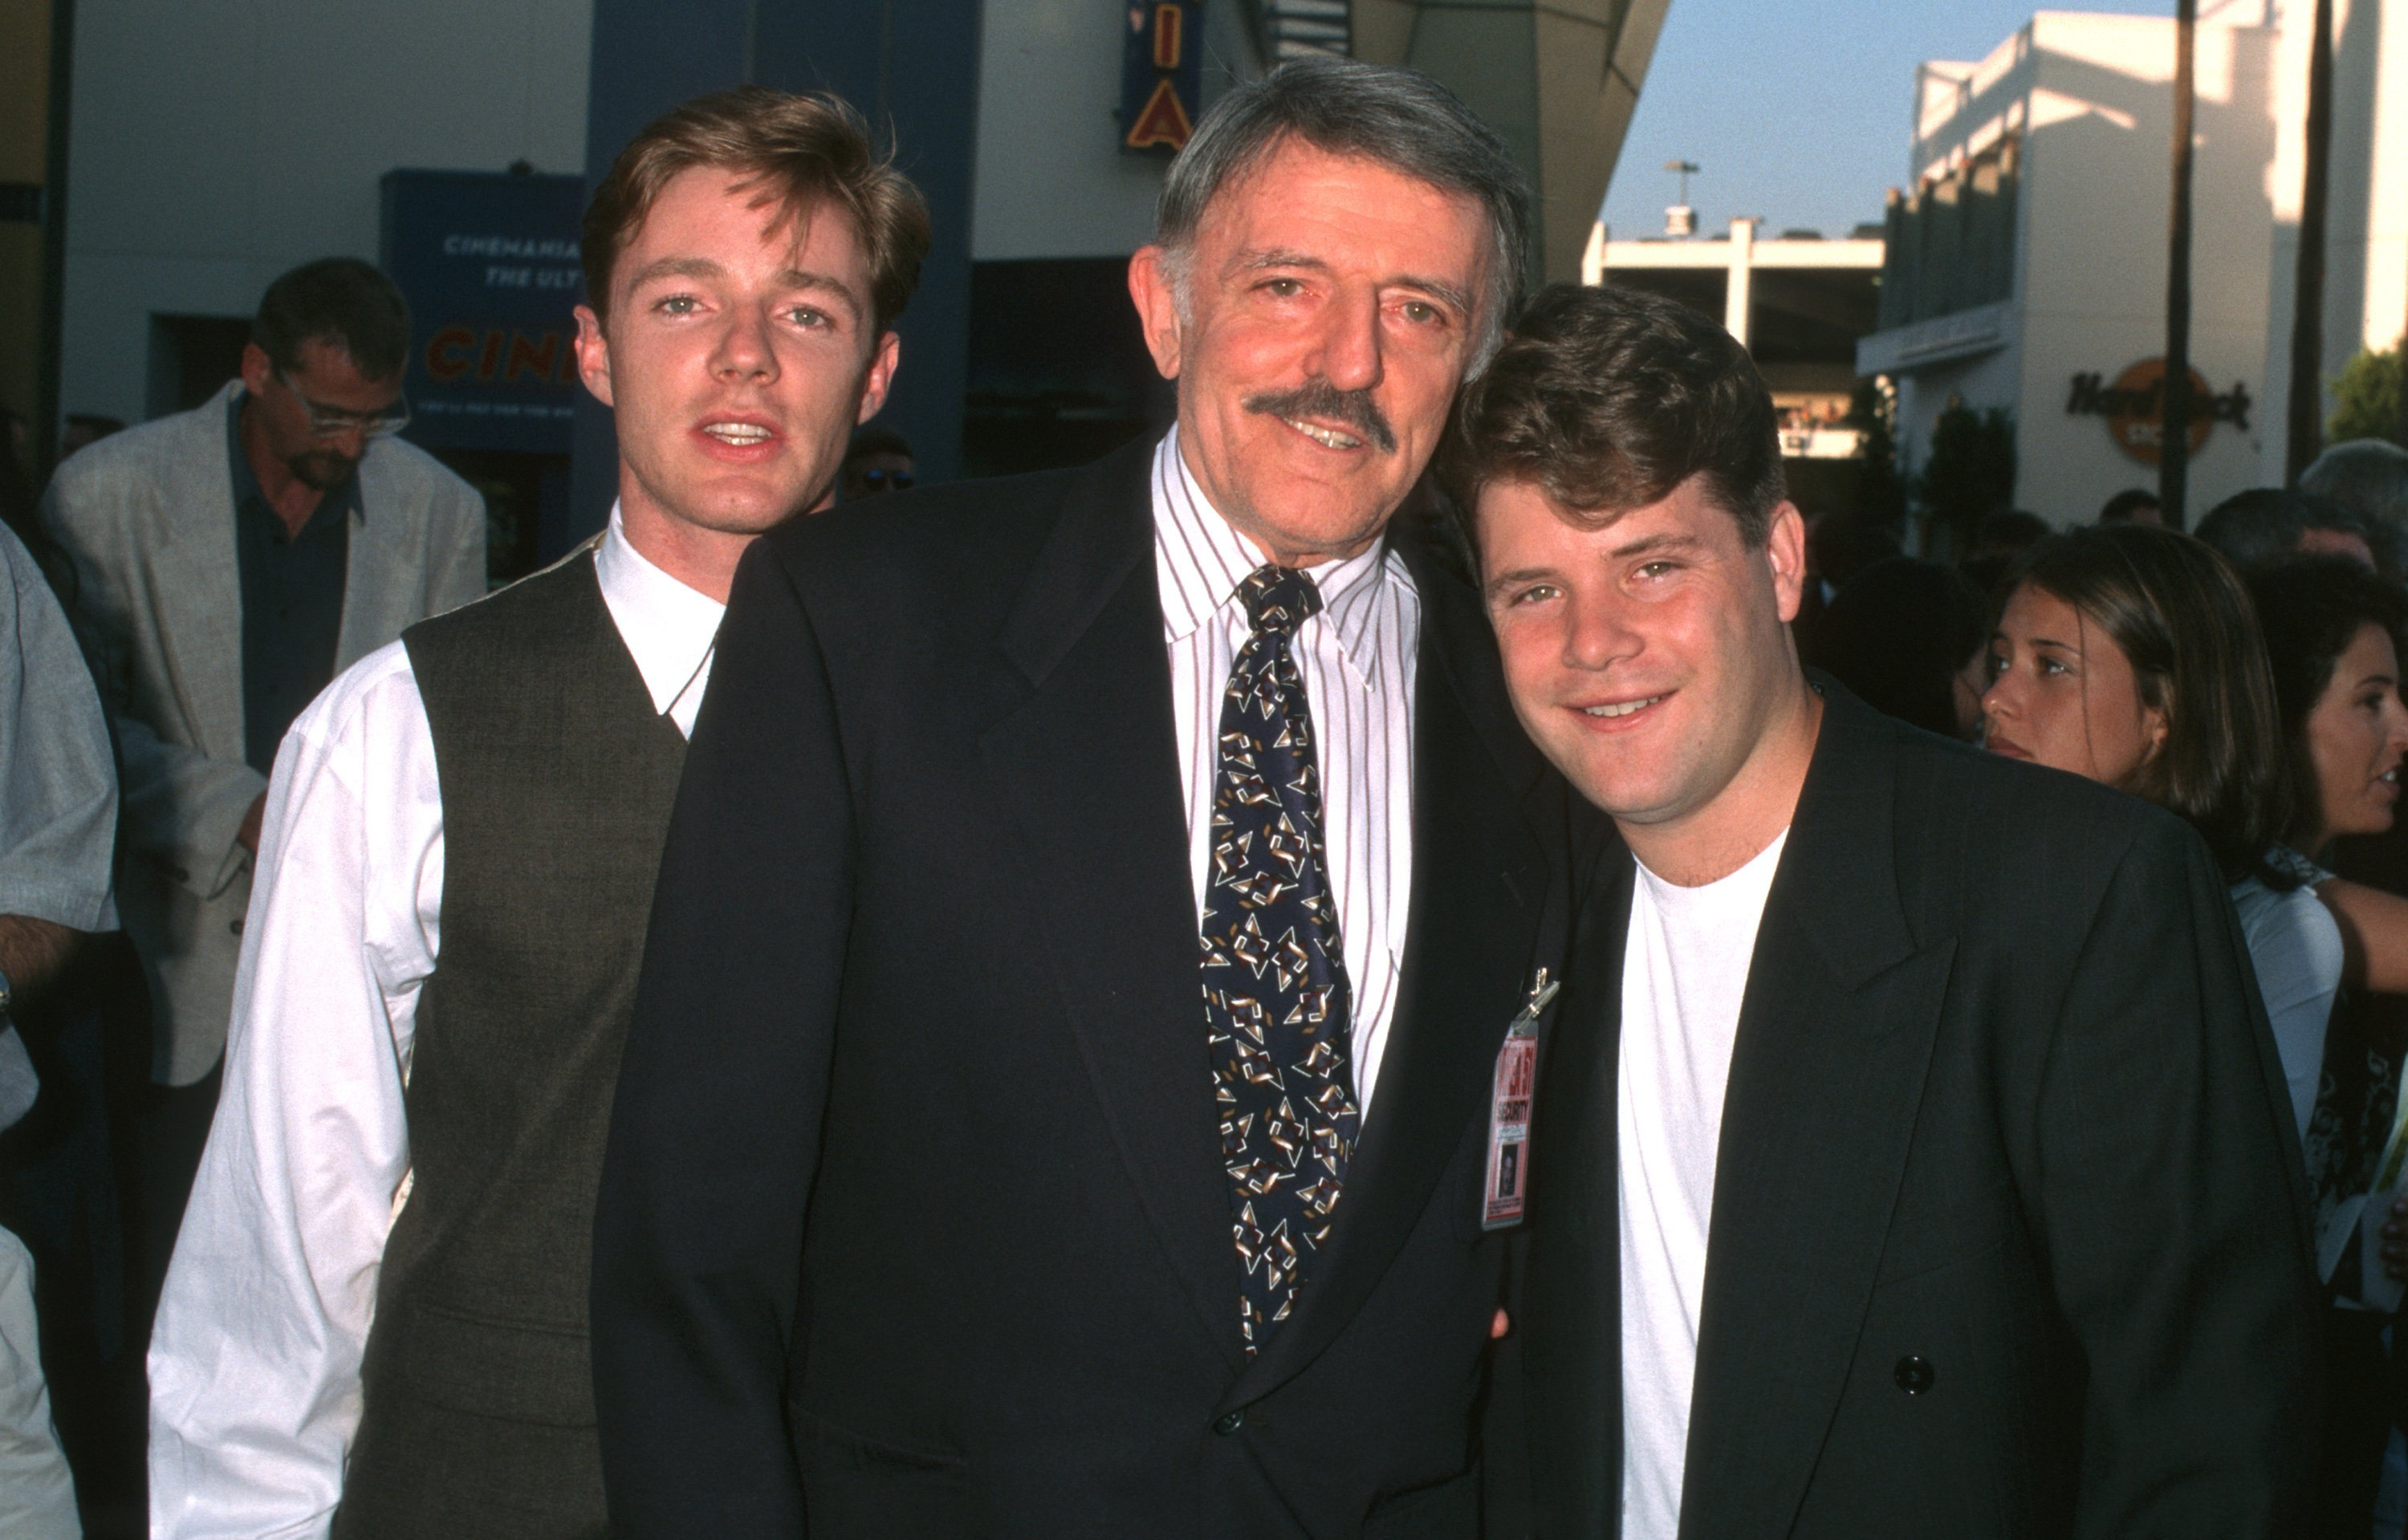 Mackenzie Astin, John Astin, and Sean Astin in Universal City, California on July 17, 1996 | Source: Getty Images/Global Images Ukraine